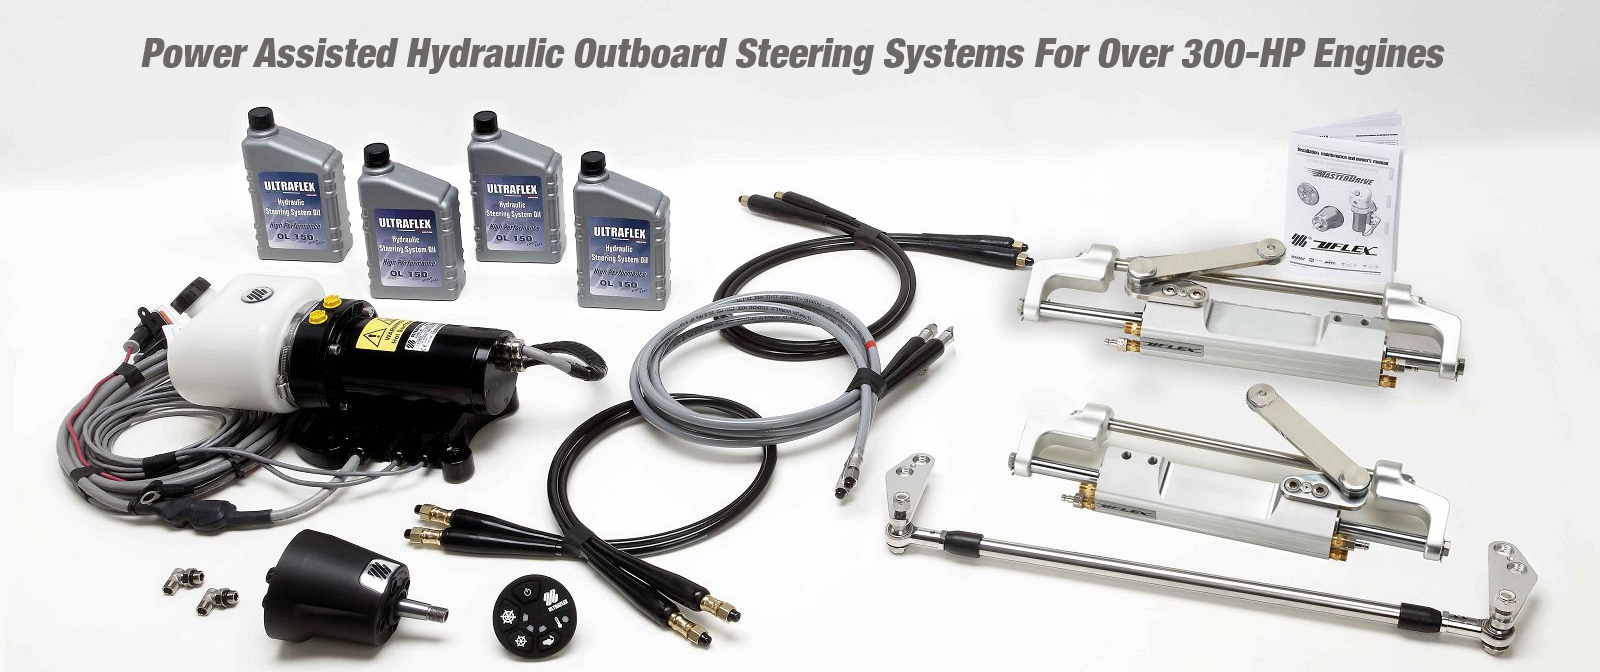 Power Assisted Outboard Hydraulic Steering Systems Over 300 HP Engines